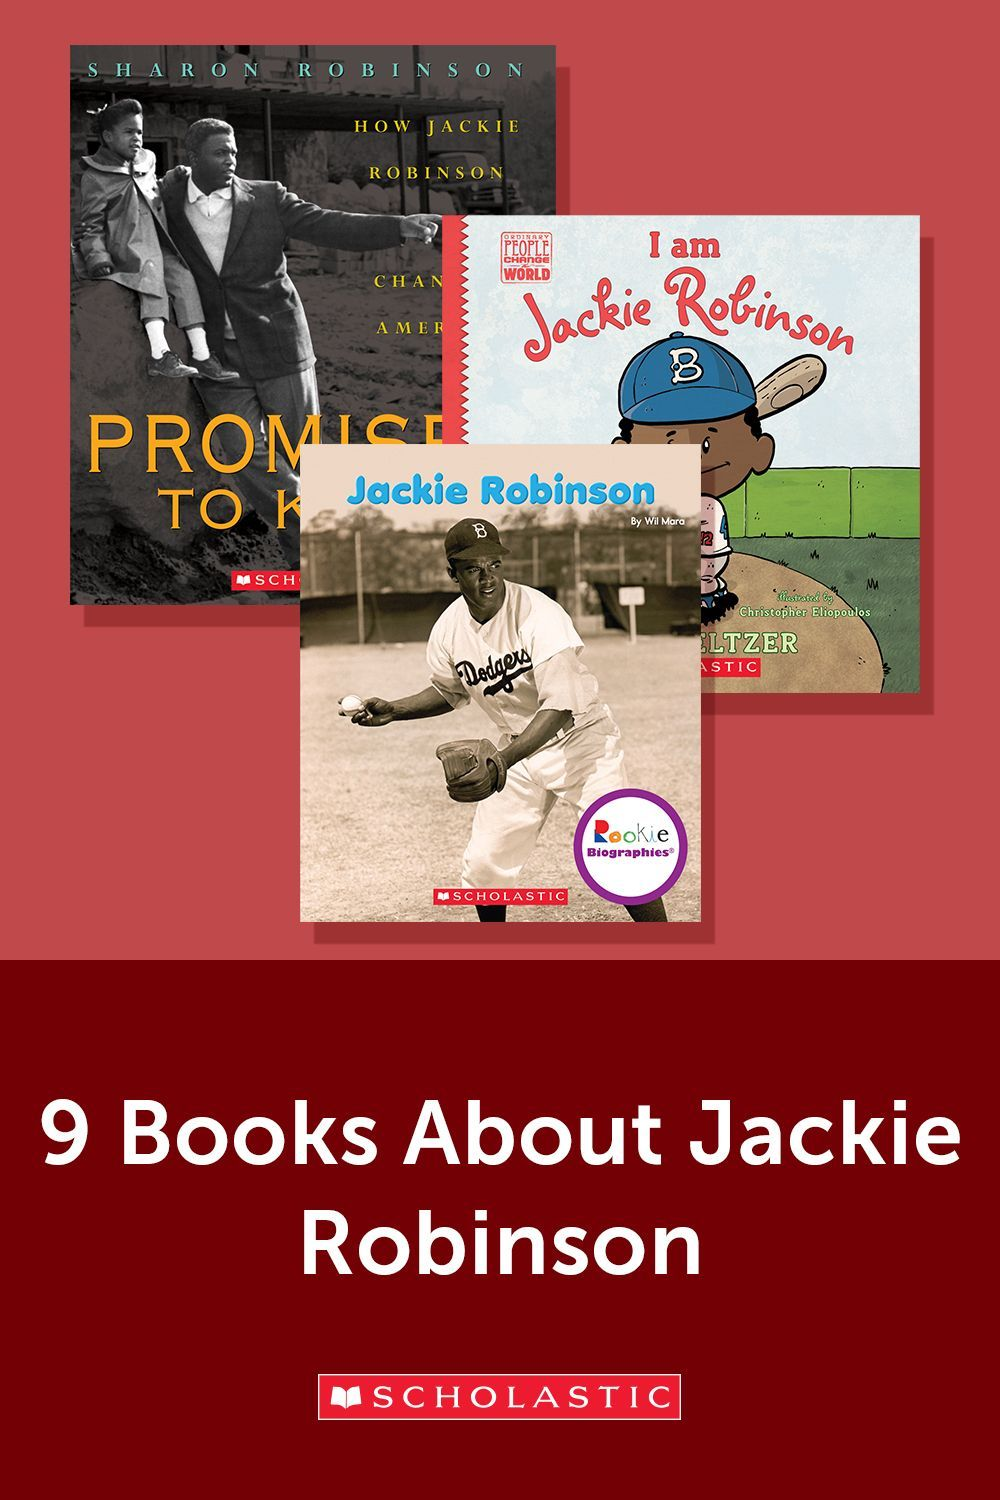 Pin by The Amazon Affiliate on History in 2020 Jackie